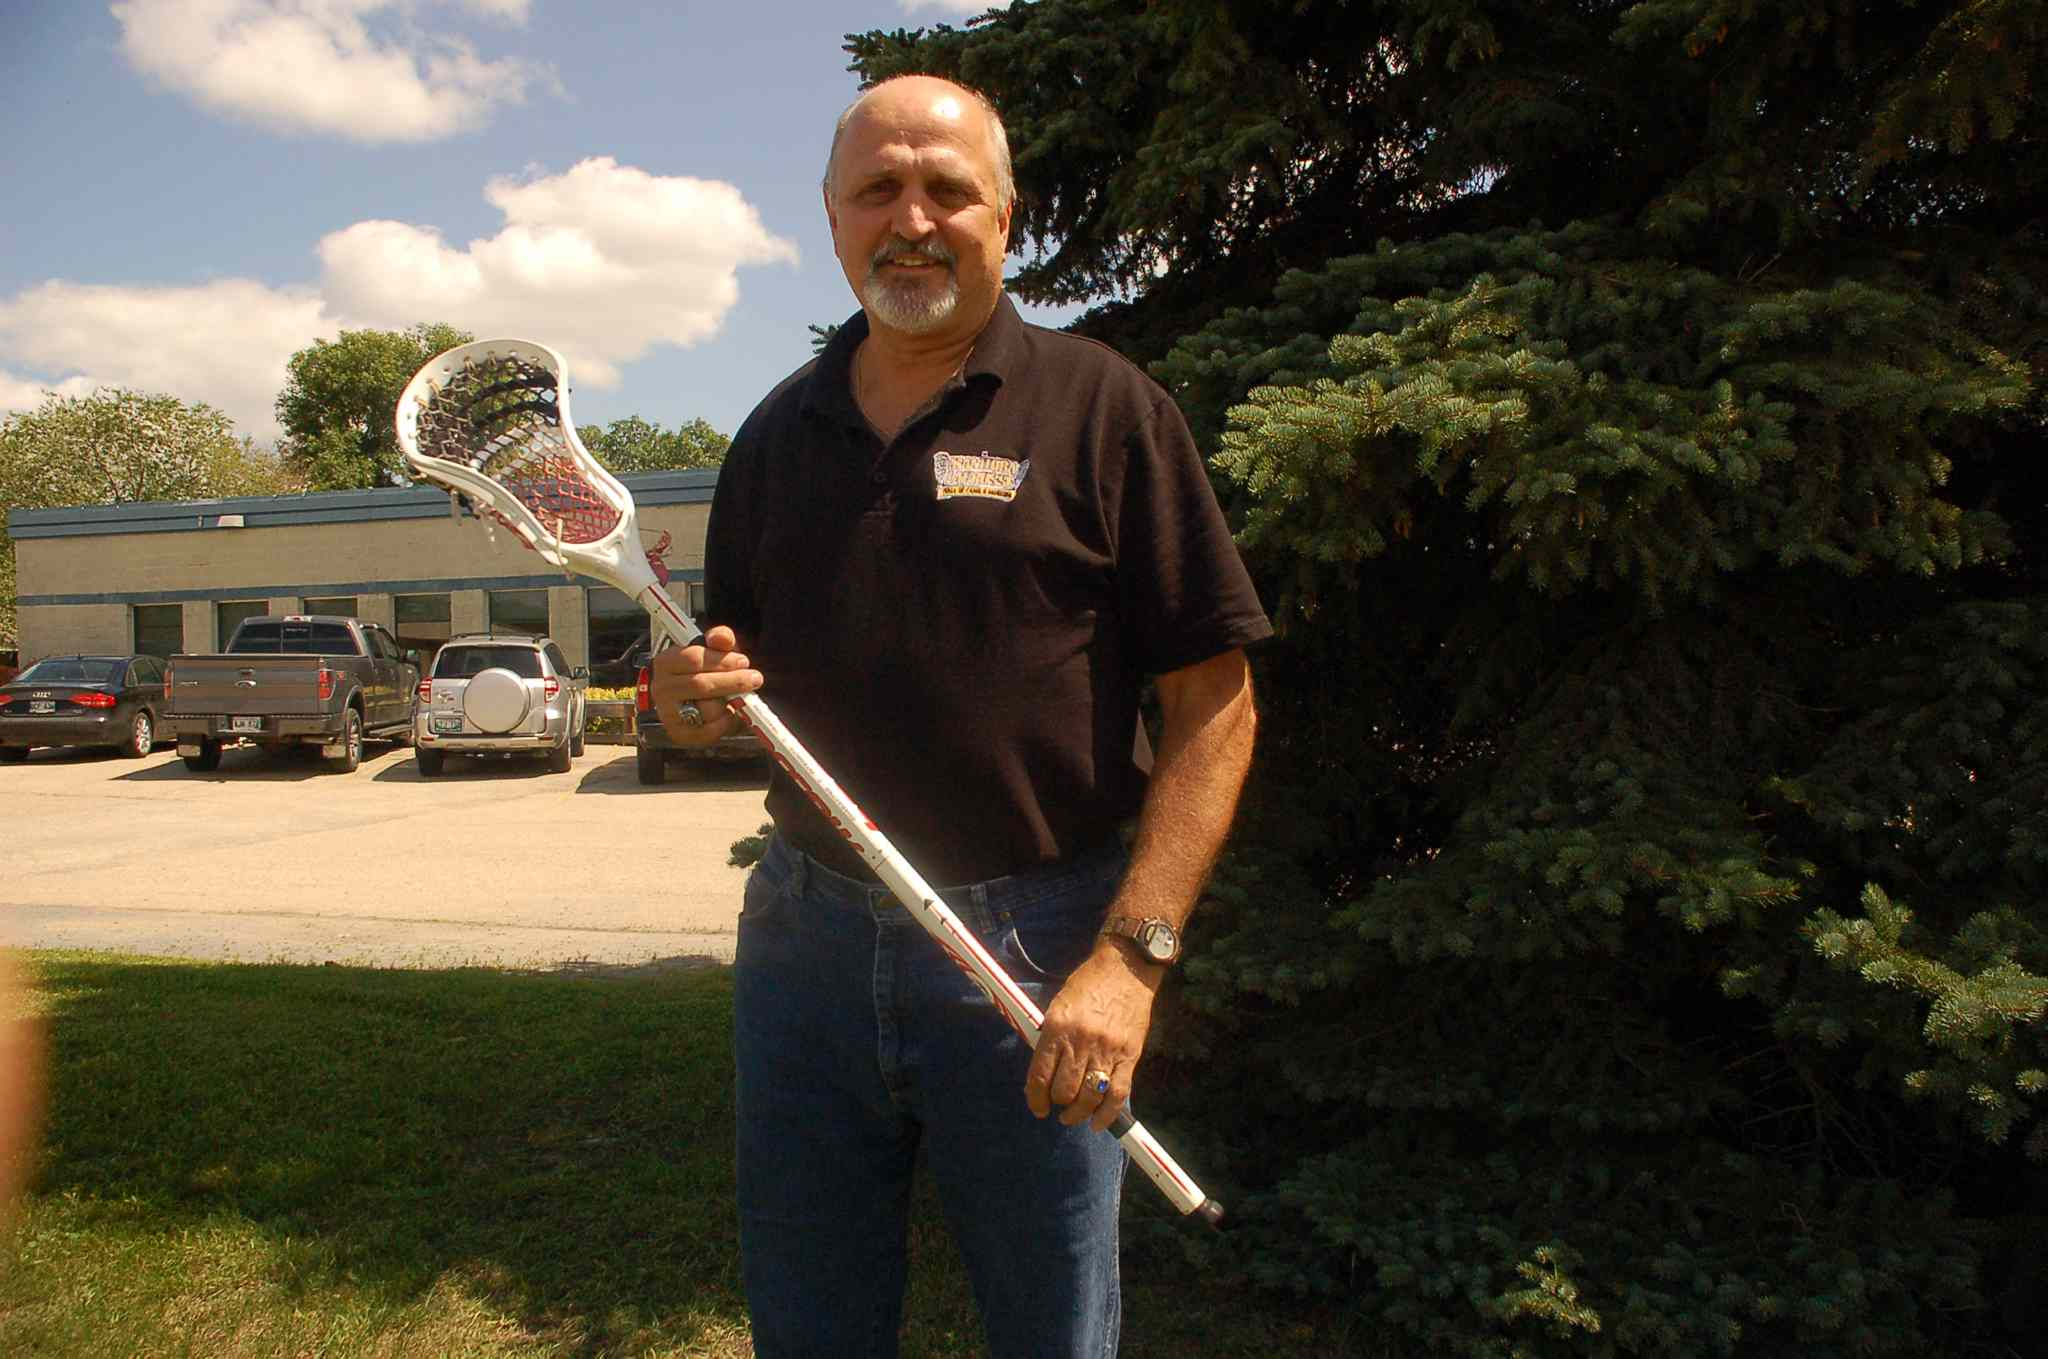 Provincial team lacrosse star Keith McLennan is shown with a lacrosse stick he is repairing. McLennan fixes sticks for free at local games, and even on his lunch break.